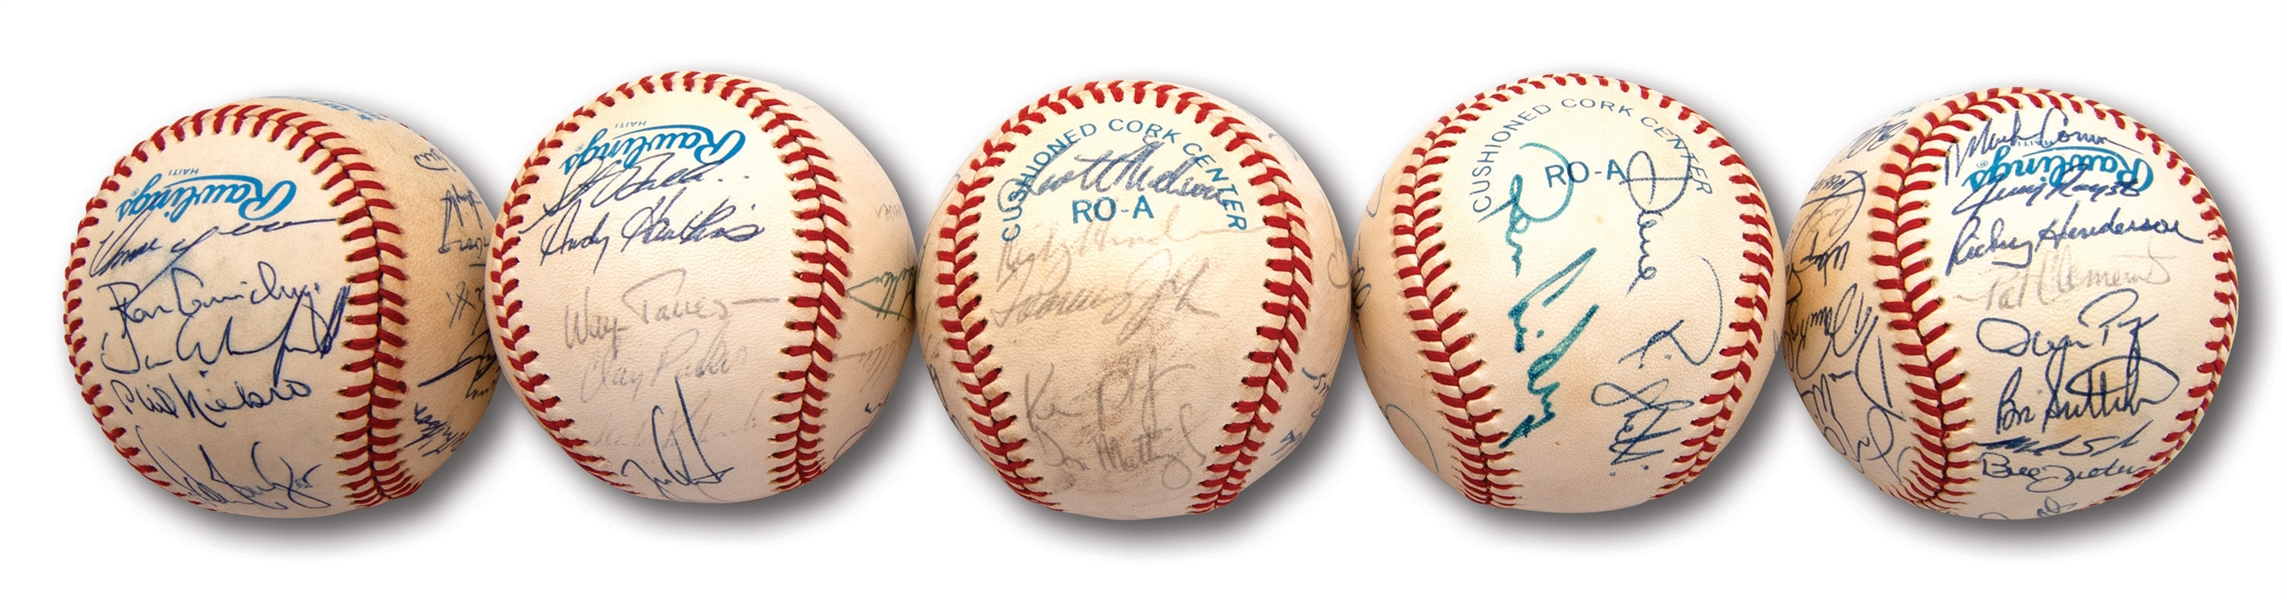 1985-1989 NEW YORK YANKEES TEAM SIGNED OAL (BROWN) BASEBALLS LOT OF (5) - ALL W/ PSA/DNA LOAS